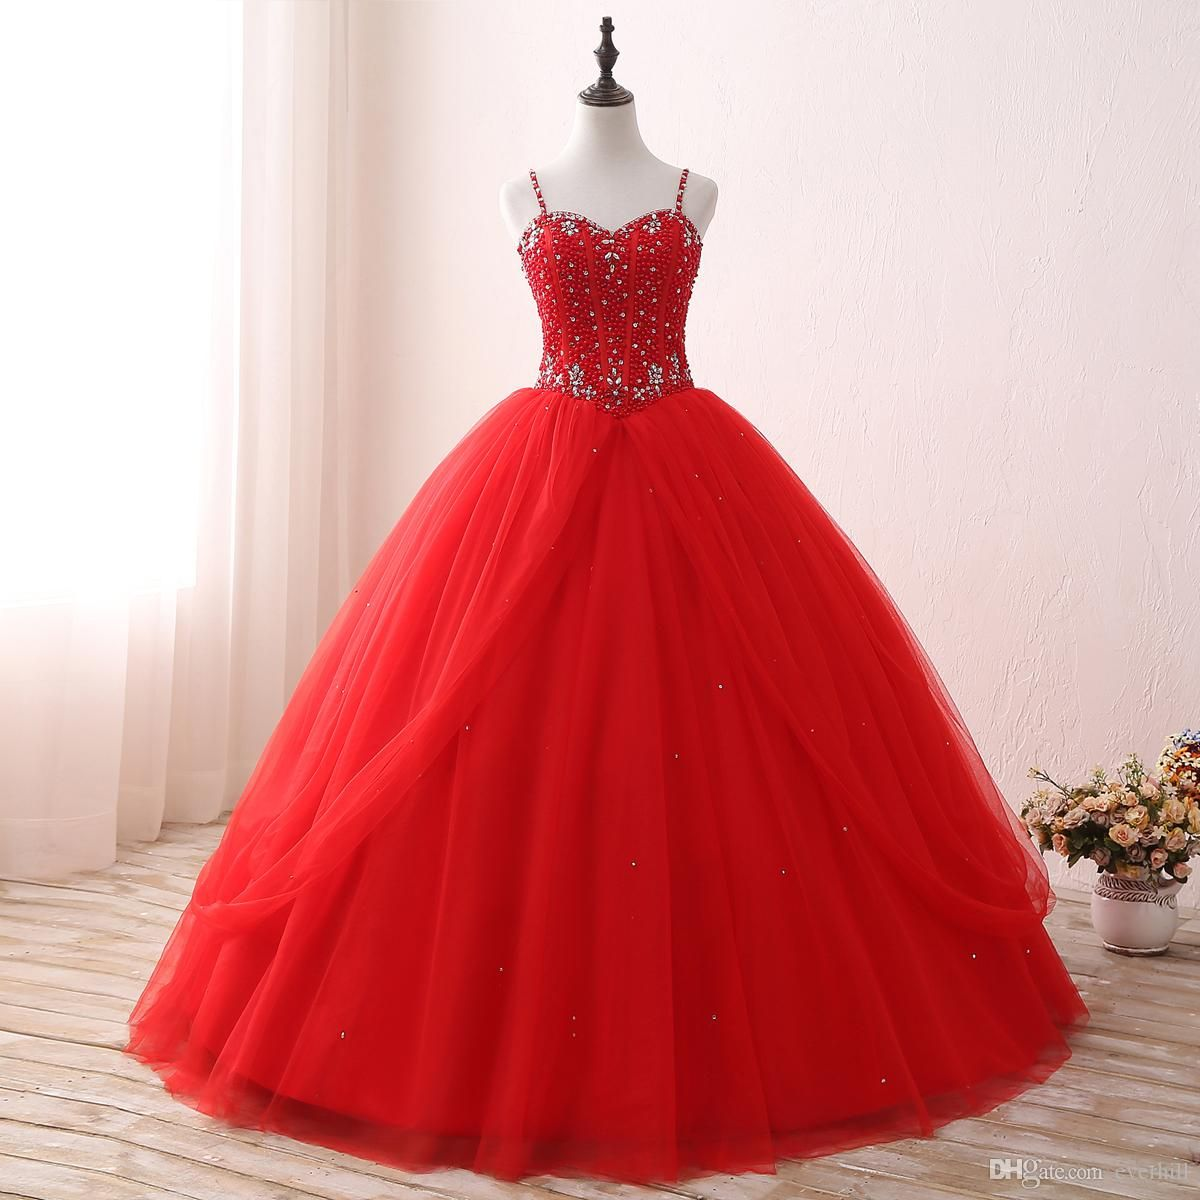 a7887b9c002 Ball Gown Red Quinceanera Dresses With Straps Ruffles Beaded Vestidos De 15  Anos Vestidos De Quinceanera 2017 Crystal Party Prom Dress Long